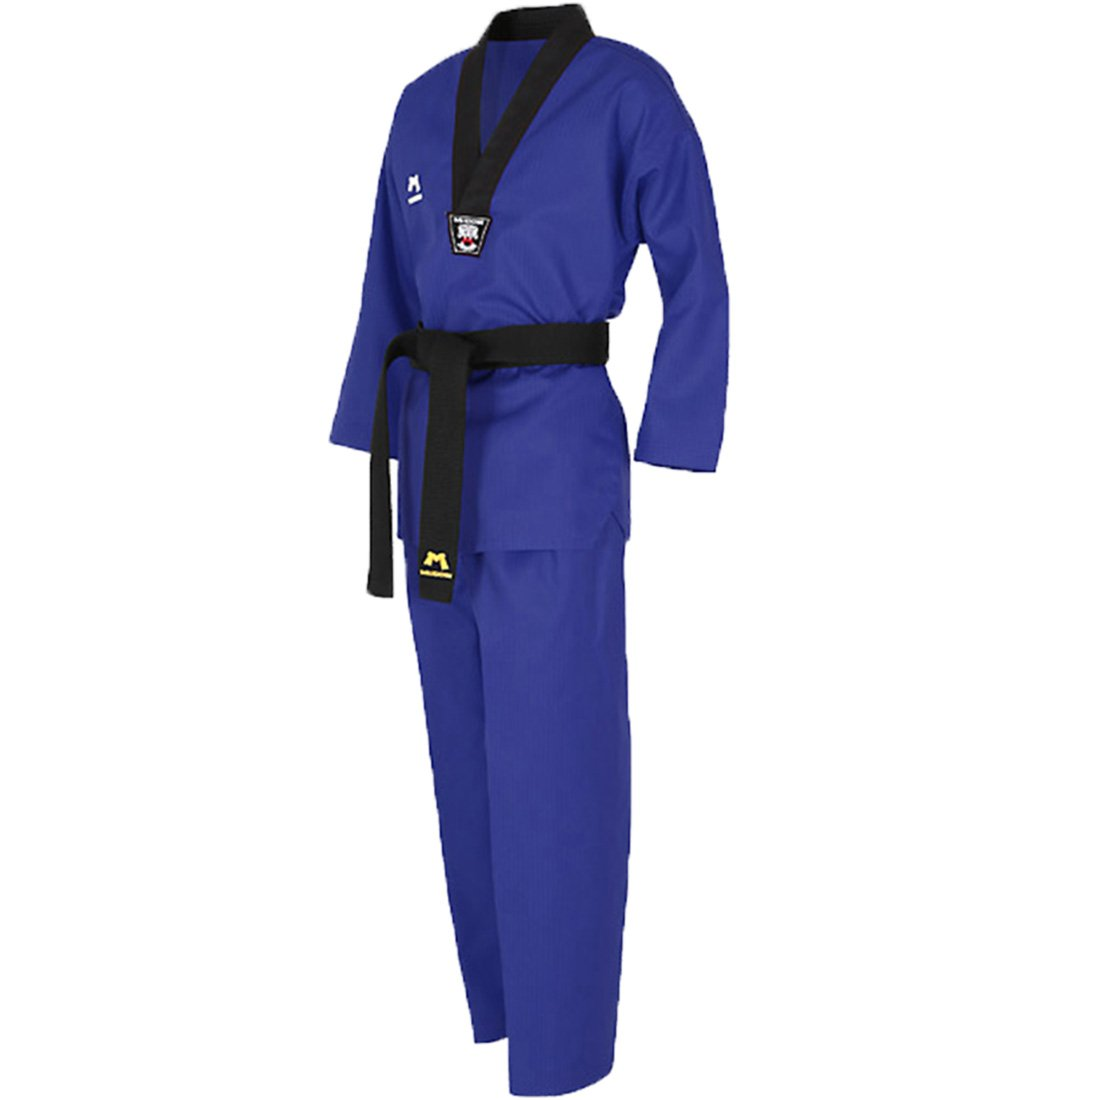 Mudoin Taekwondo 3 Color Uniform for Adults V-Neck Blue Red Black TKD Martial Arts Akido Hapkido WTF (180(170-180cm)(5.57-5.90ft), Blue) by Mudoin